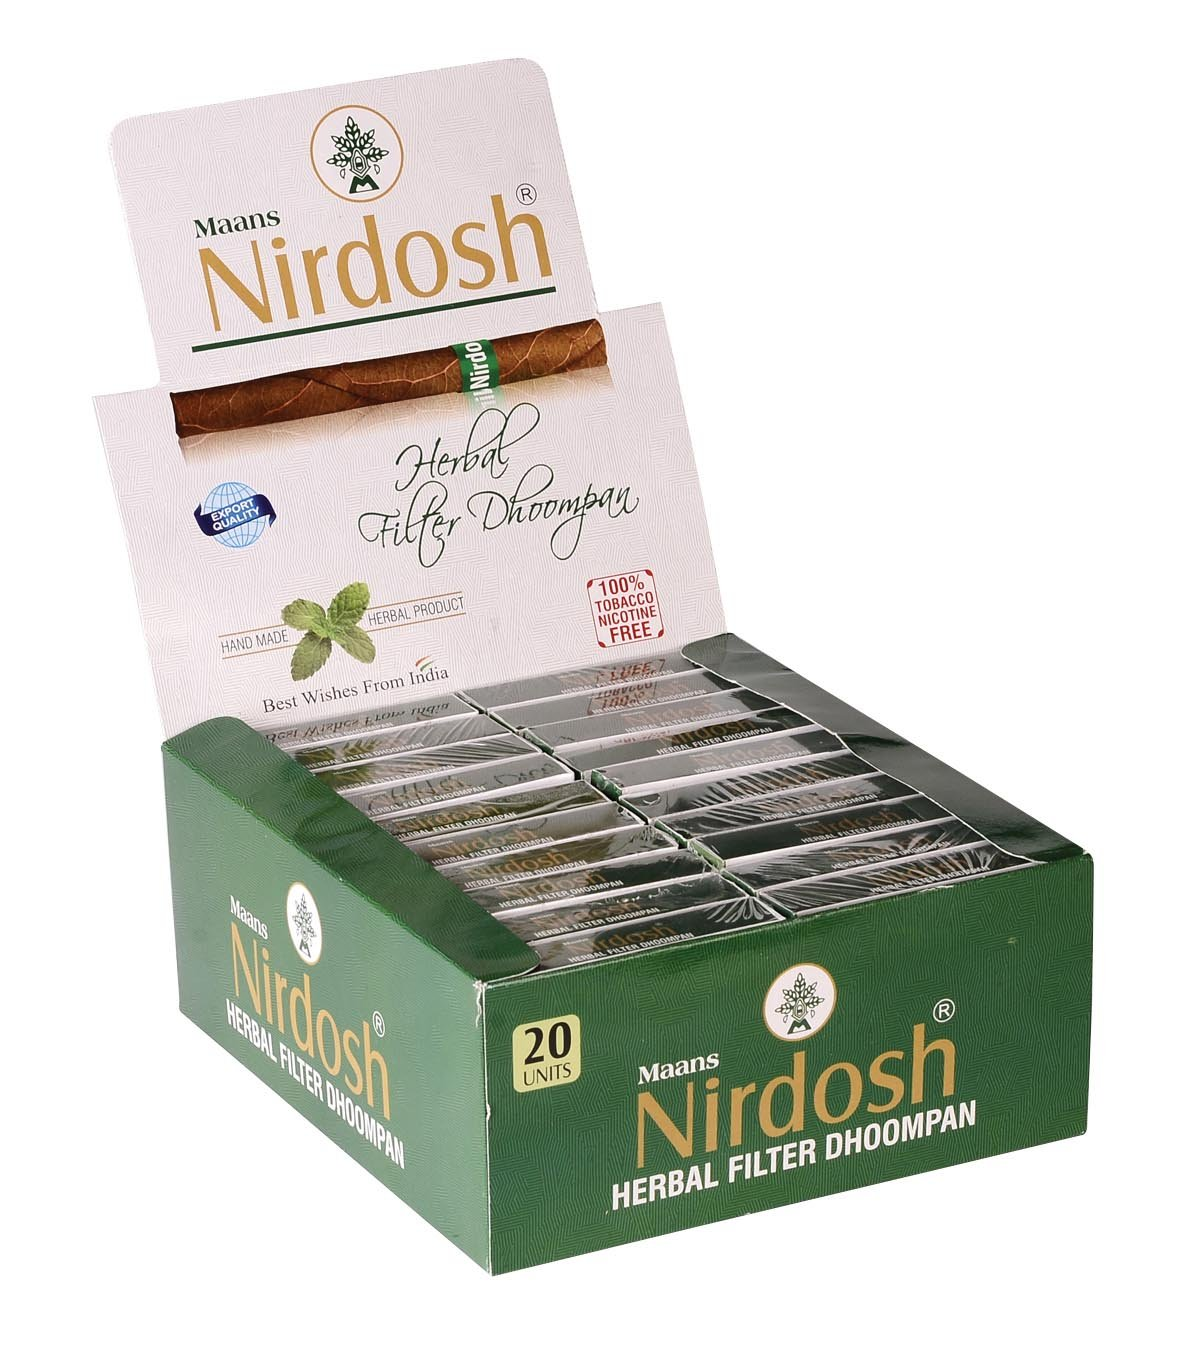 Nirdosh Tobacco & Nicotine FREE Herbal Cigarettes - 1 carton of 30 packs!! by Nirdosh